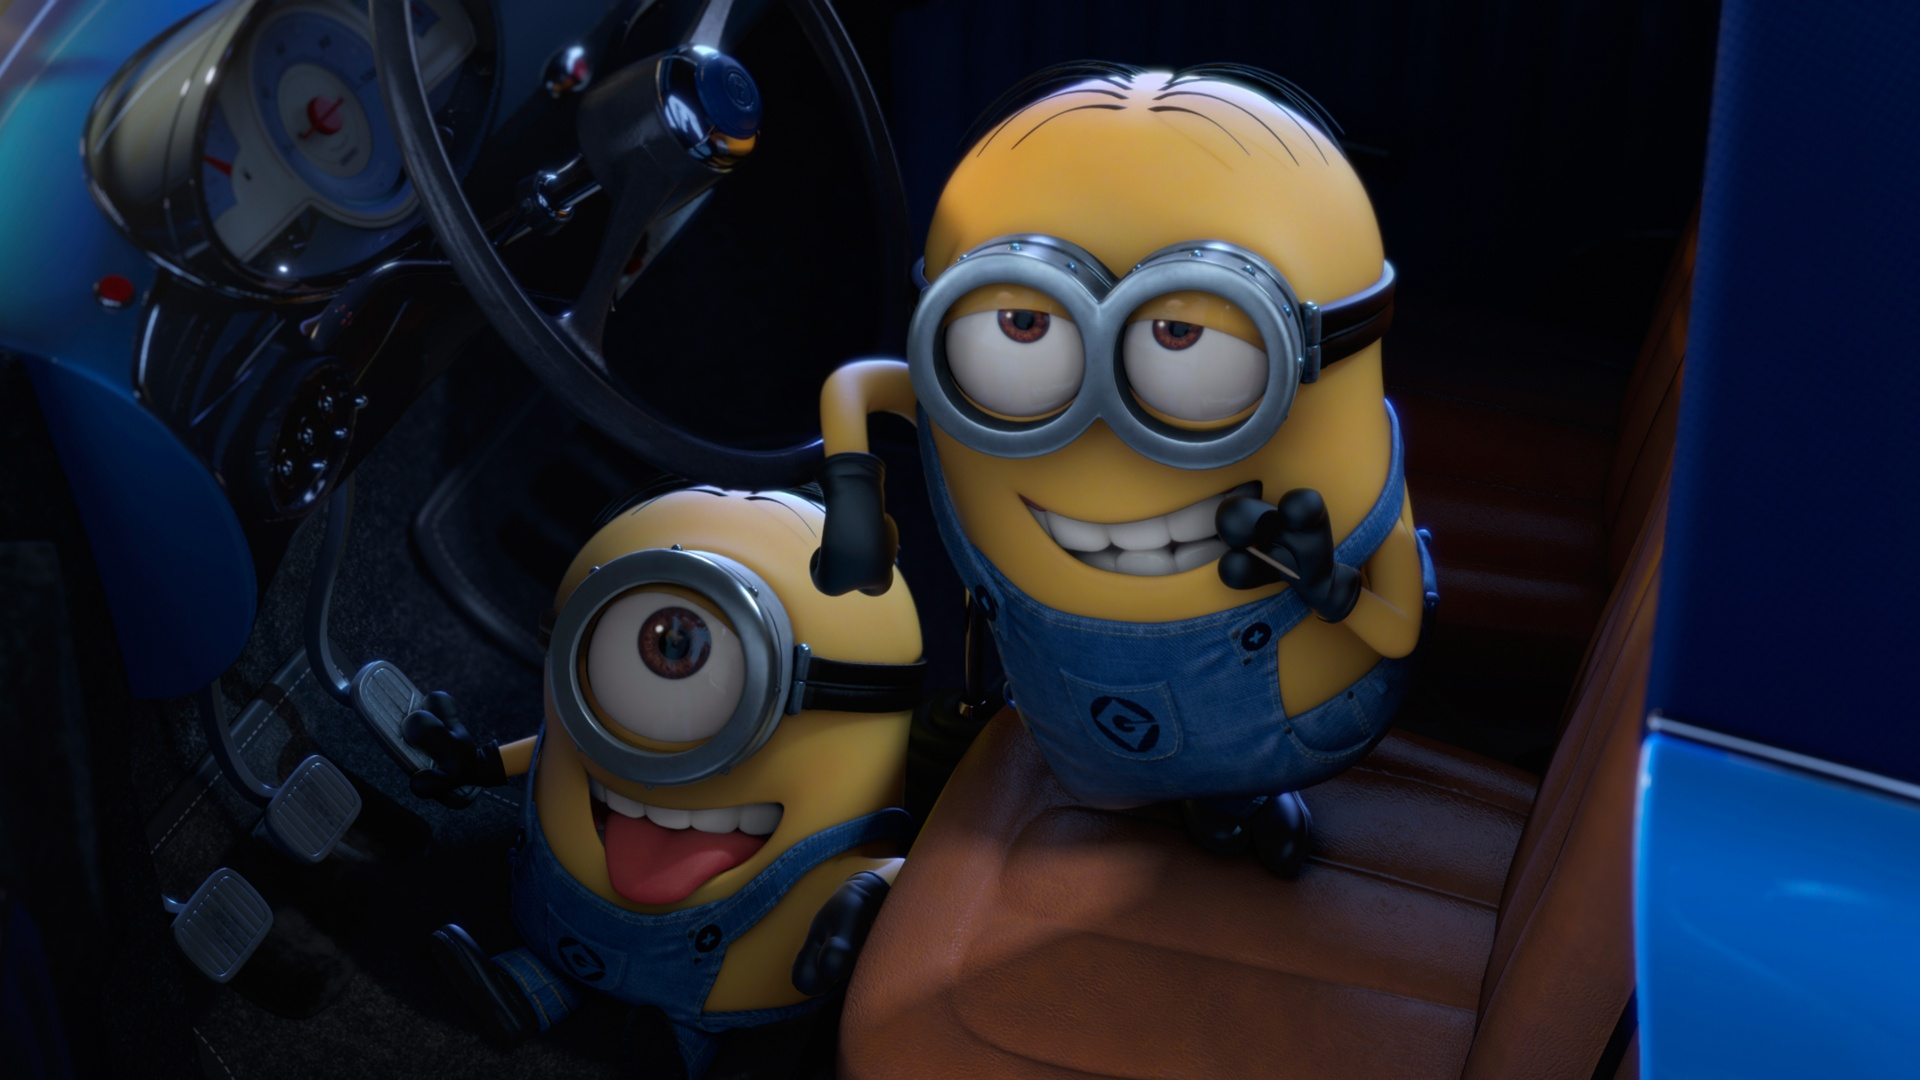 Download Minions glory in Car Wallpaper in 1920x1080 Resolution 1920x1080